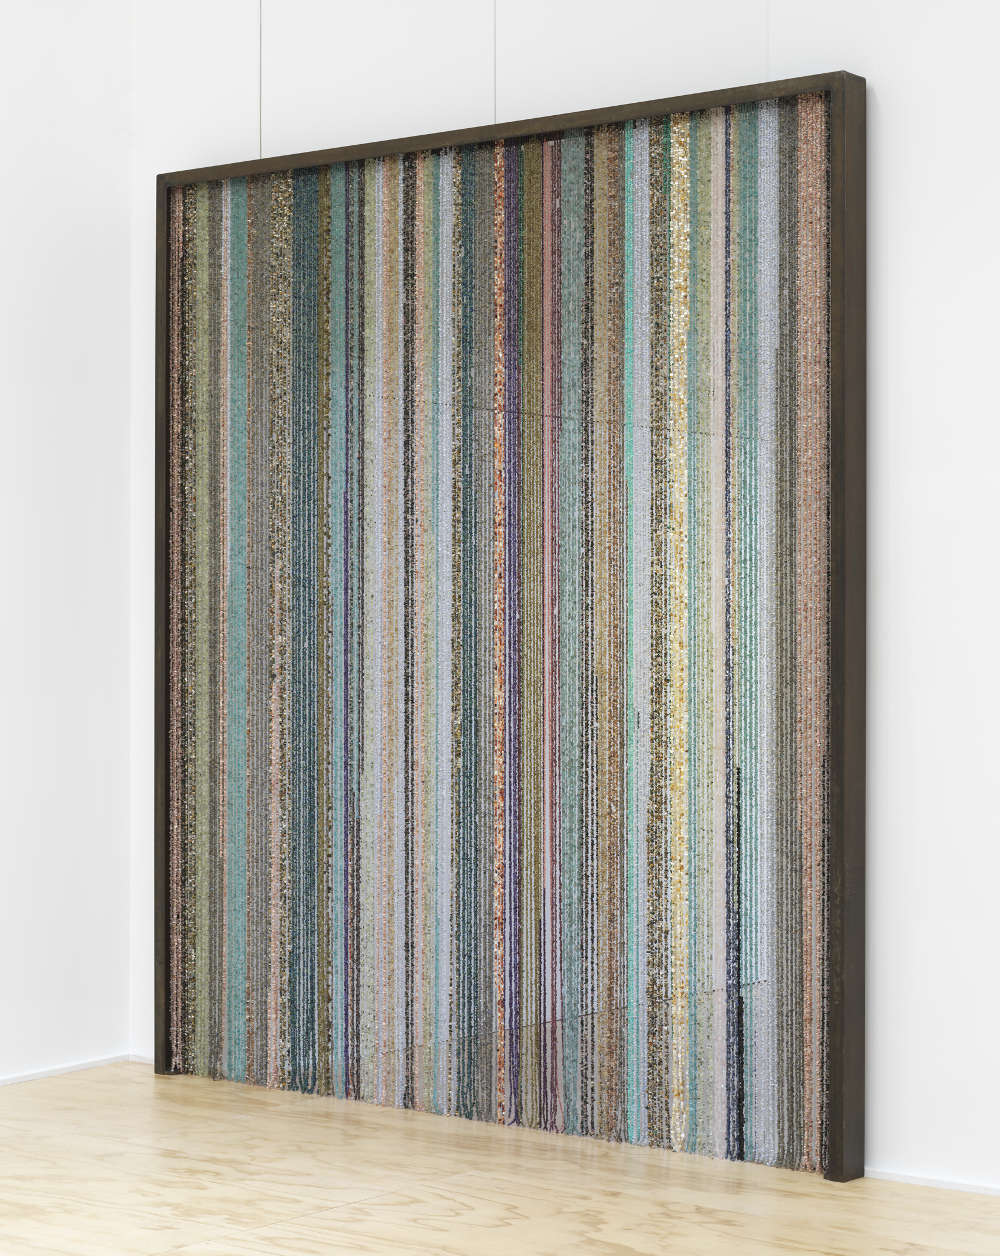 SAM FALLS, Healing sculpture (Curtain), 2017. Assorted gemstones, nylon coated steel wire, steel frame 274.5 x 241.5 x 10 cm / 108 x 95 x 4 inches